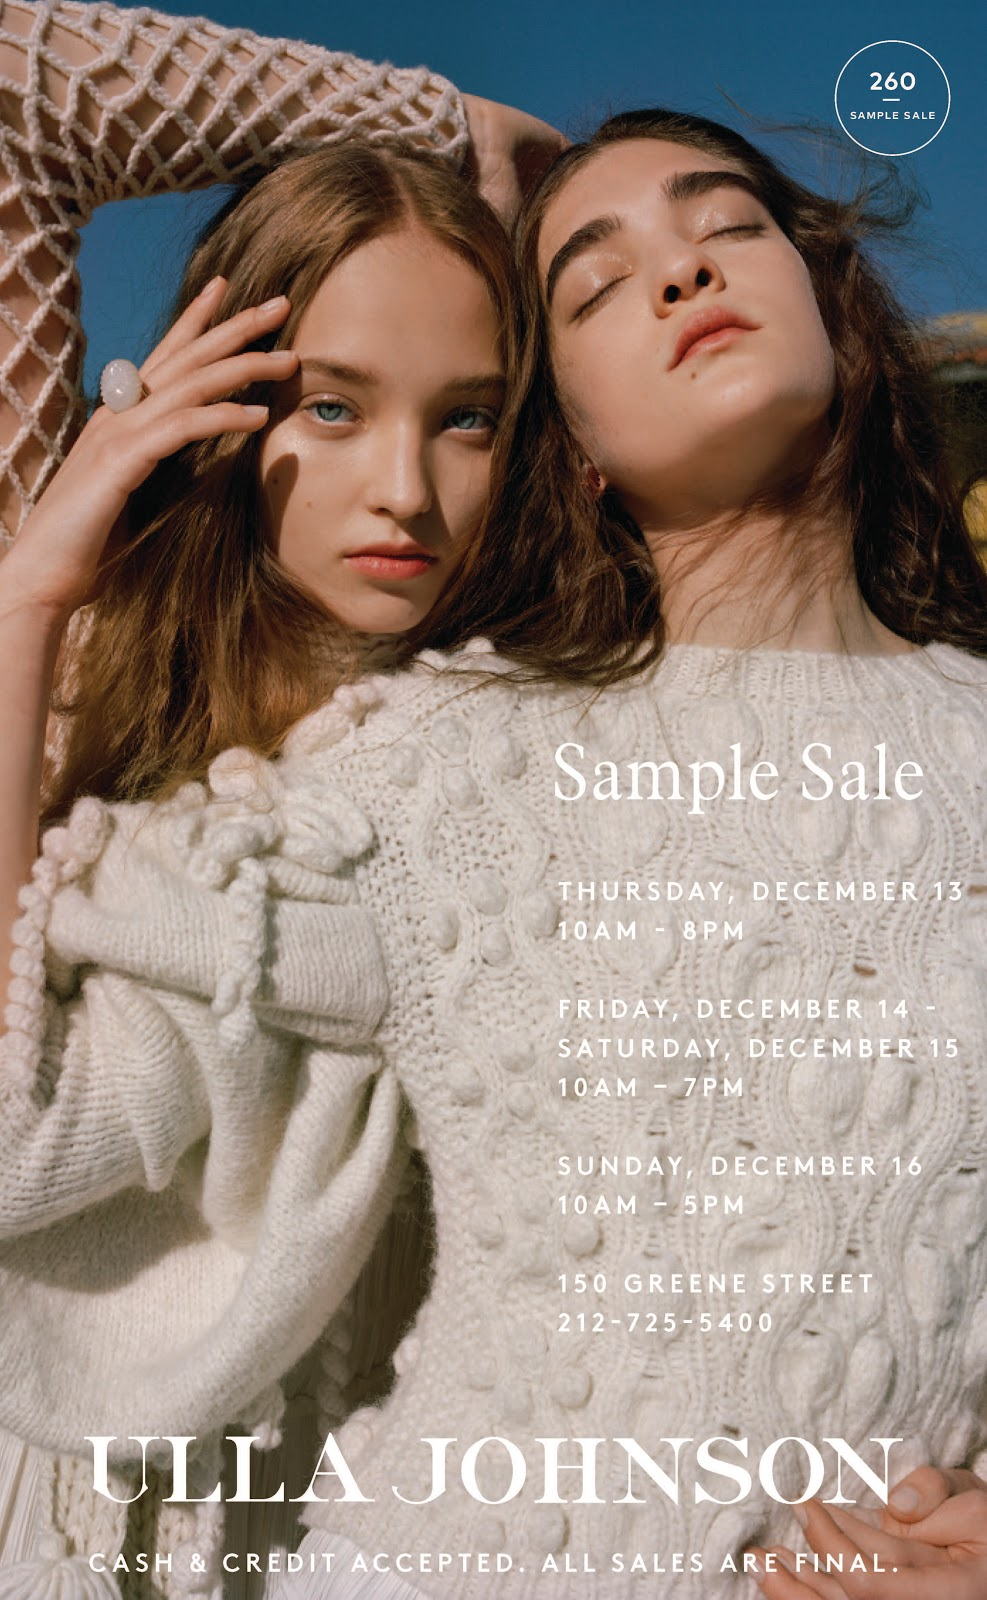 UllaJohnson_SampleSale_Invite.jpg